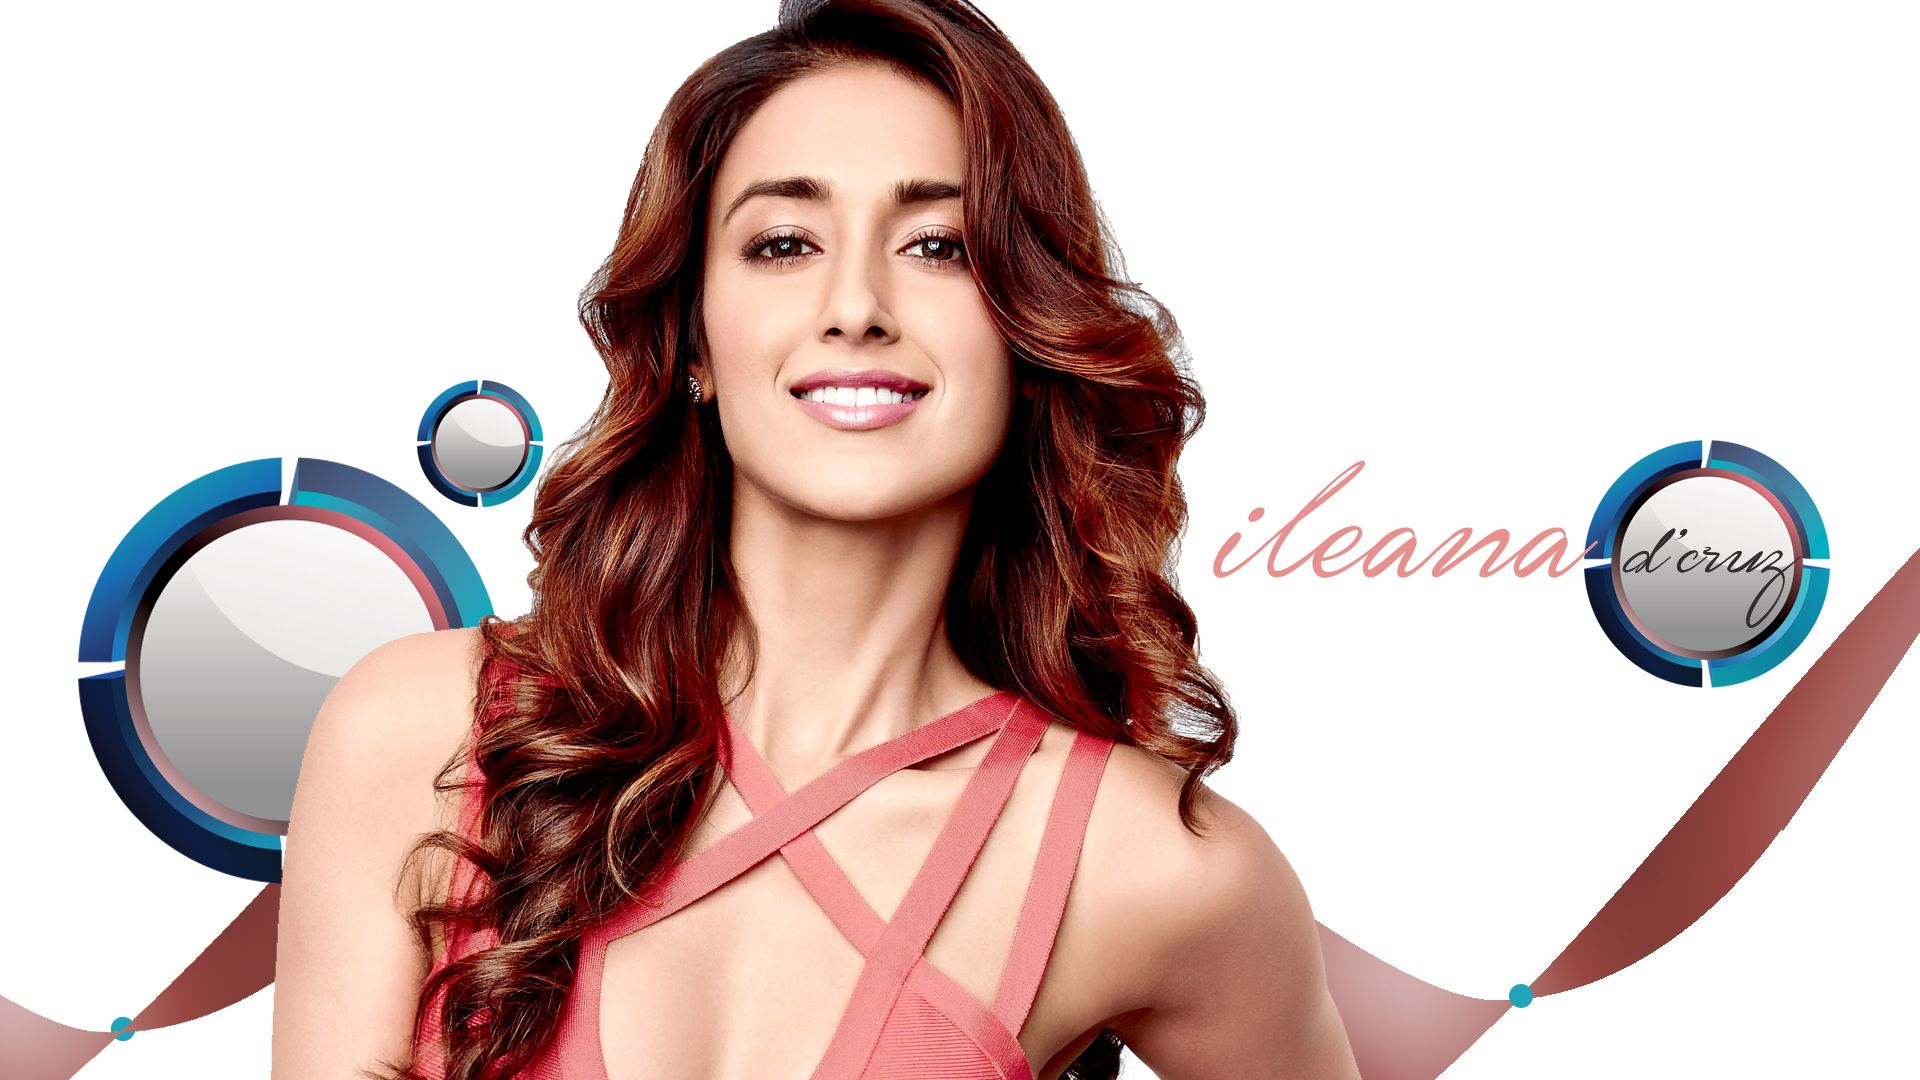 Download Bollywood Actress Hd Wallpapers 1080p Free: Ileana Dcruz Hd Wallpaper Free Download Ileana Dcruz